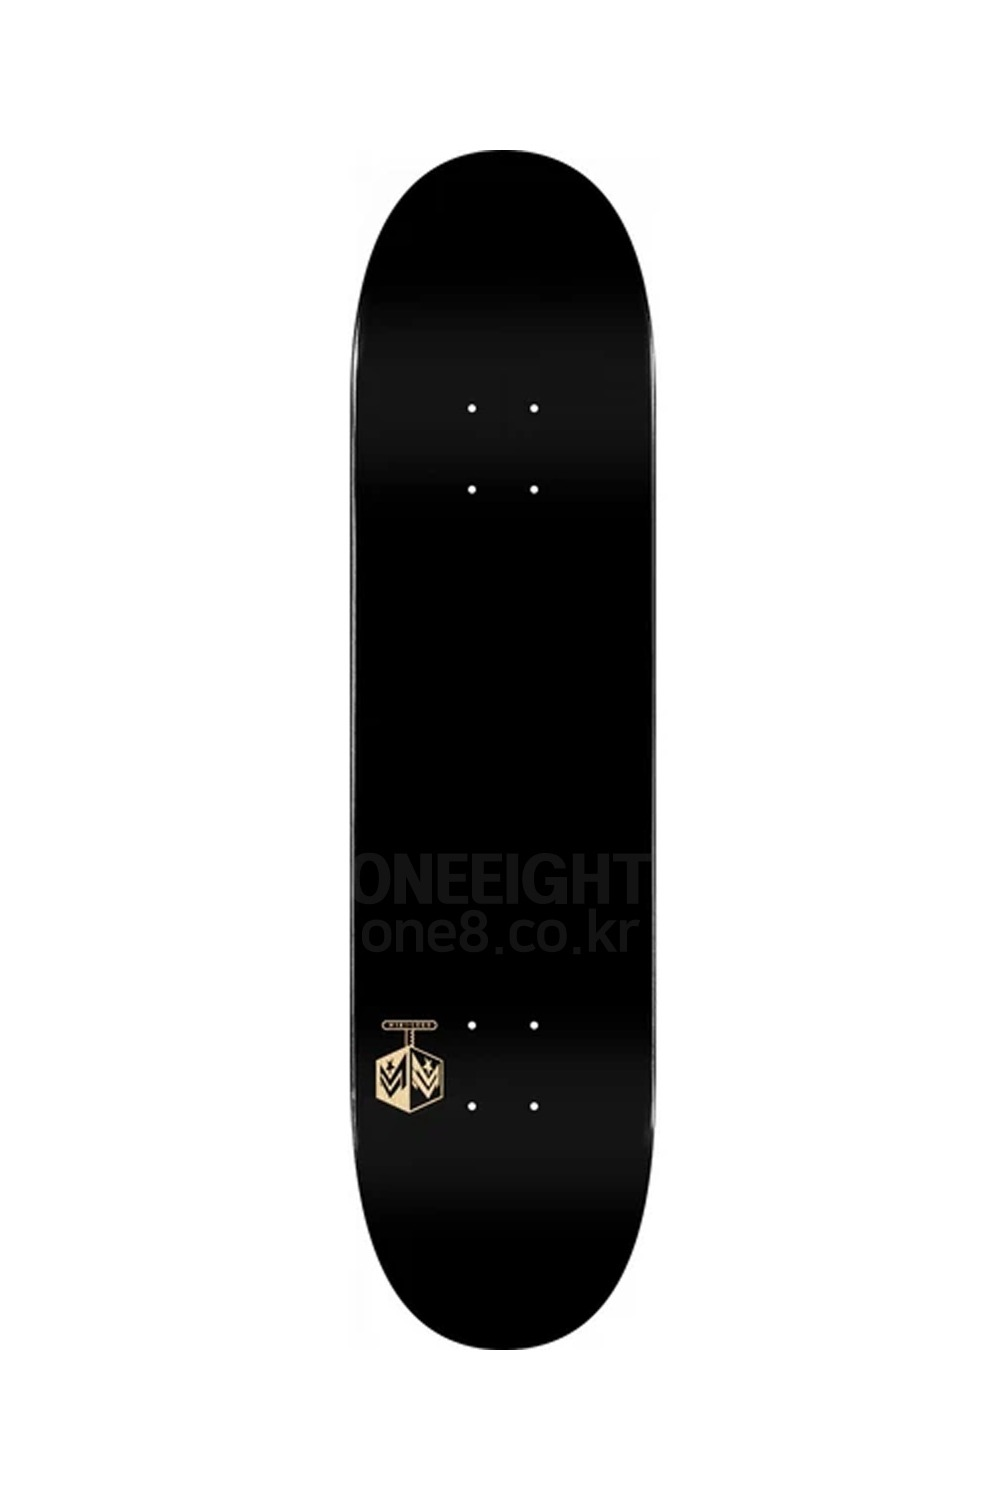 미니로고 스케이트 데크 MINILOGO_DECK_CHEVRON DETONATOR 15 BIRCH SOLID BLACK 8.0 X 31.45_Z1MD115BK